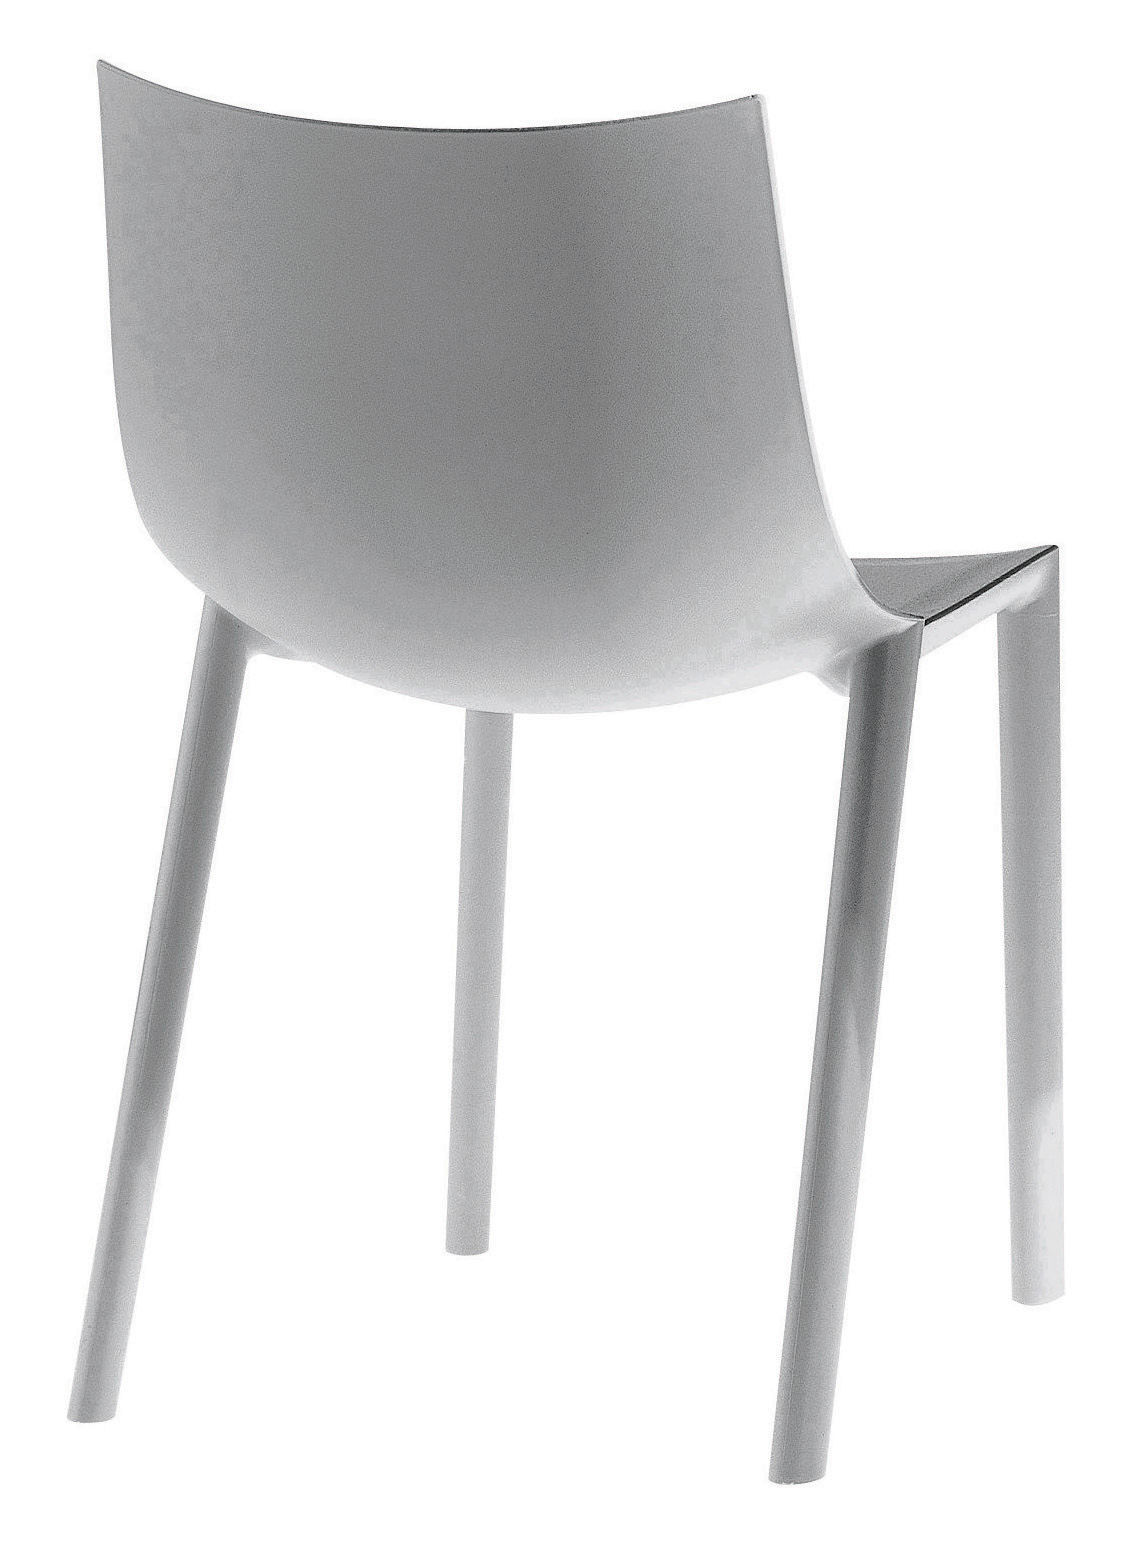 Chaise empilable bo plastique gris driade made in design for Chaise empilable plastique